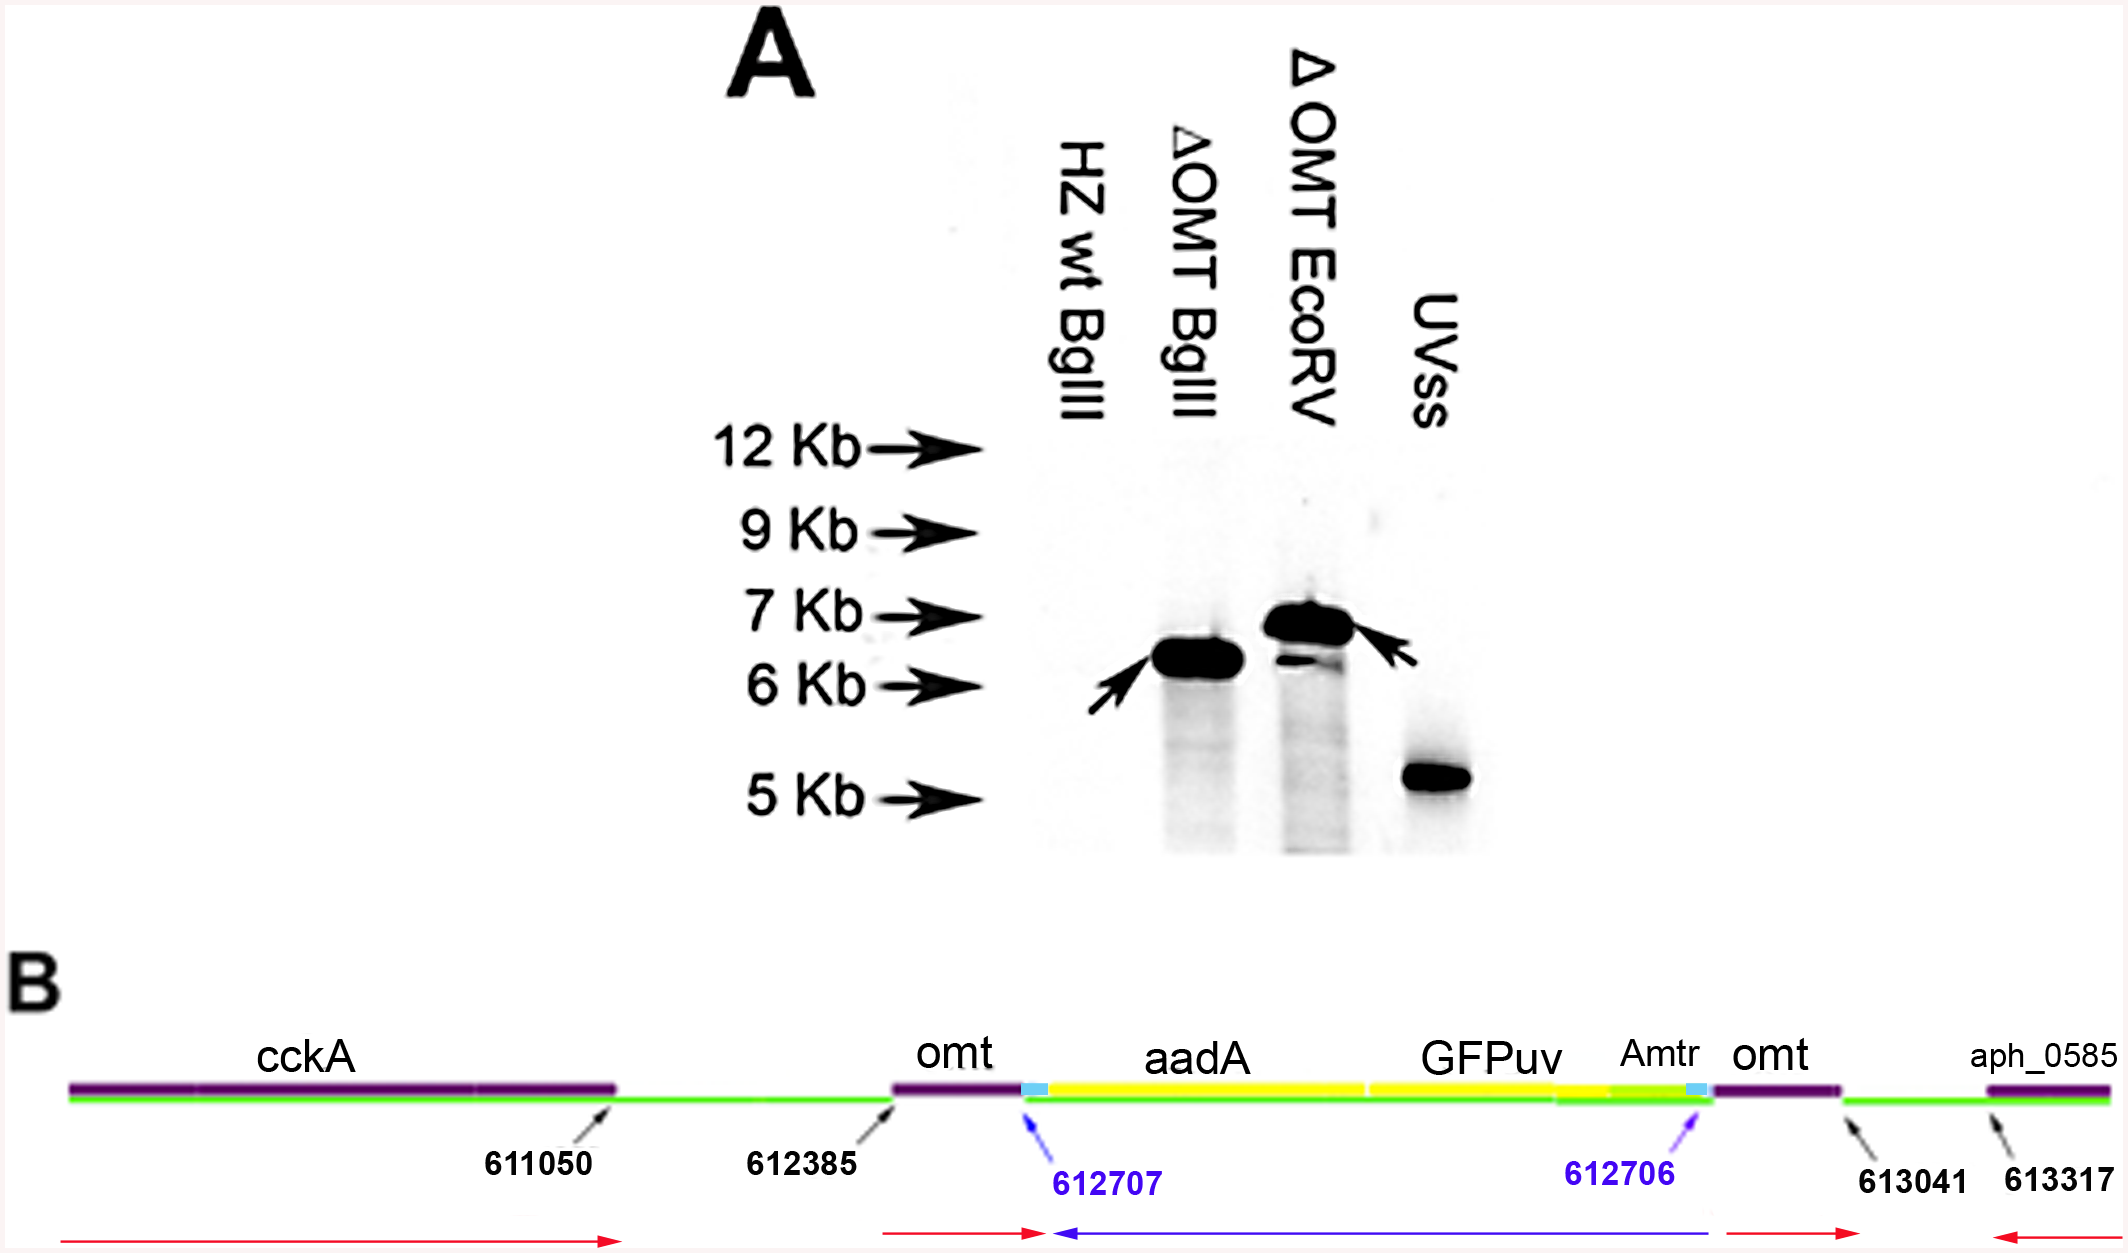 Determination of transposon insertion site in ΔOMT.